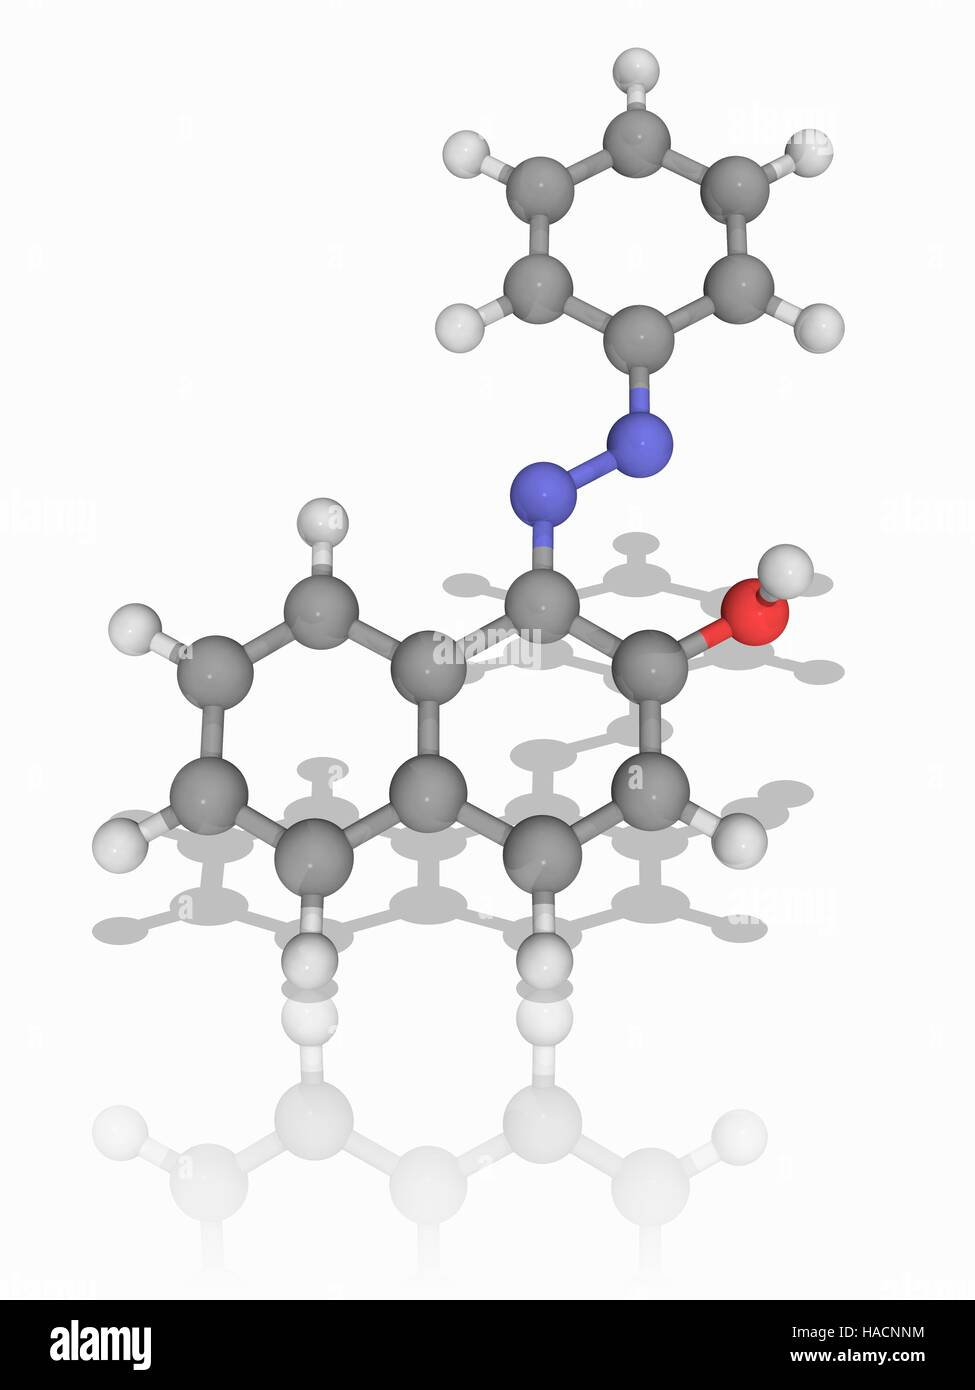 Sudan I. Molecular model of the dye and organic compound Sudan I (C16.H12.N2.O), also known as Solvent Orange R - Stock Image